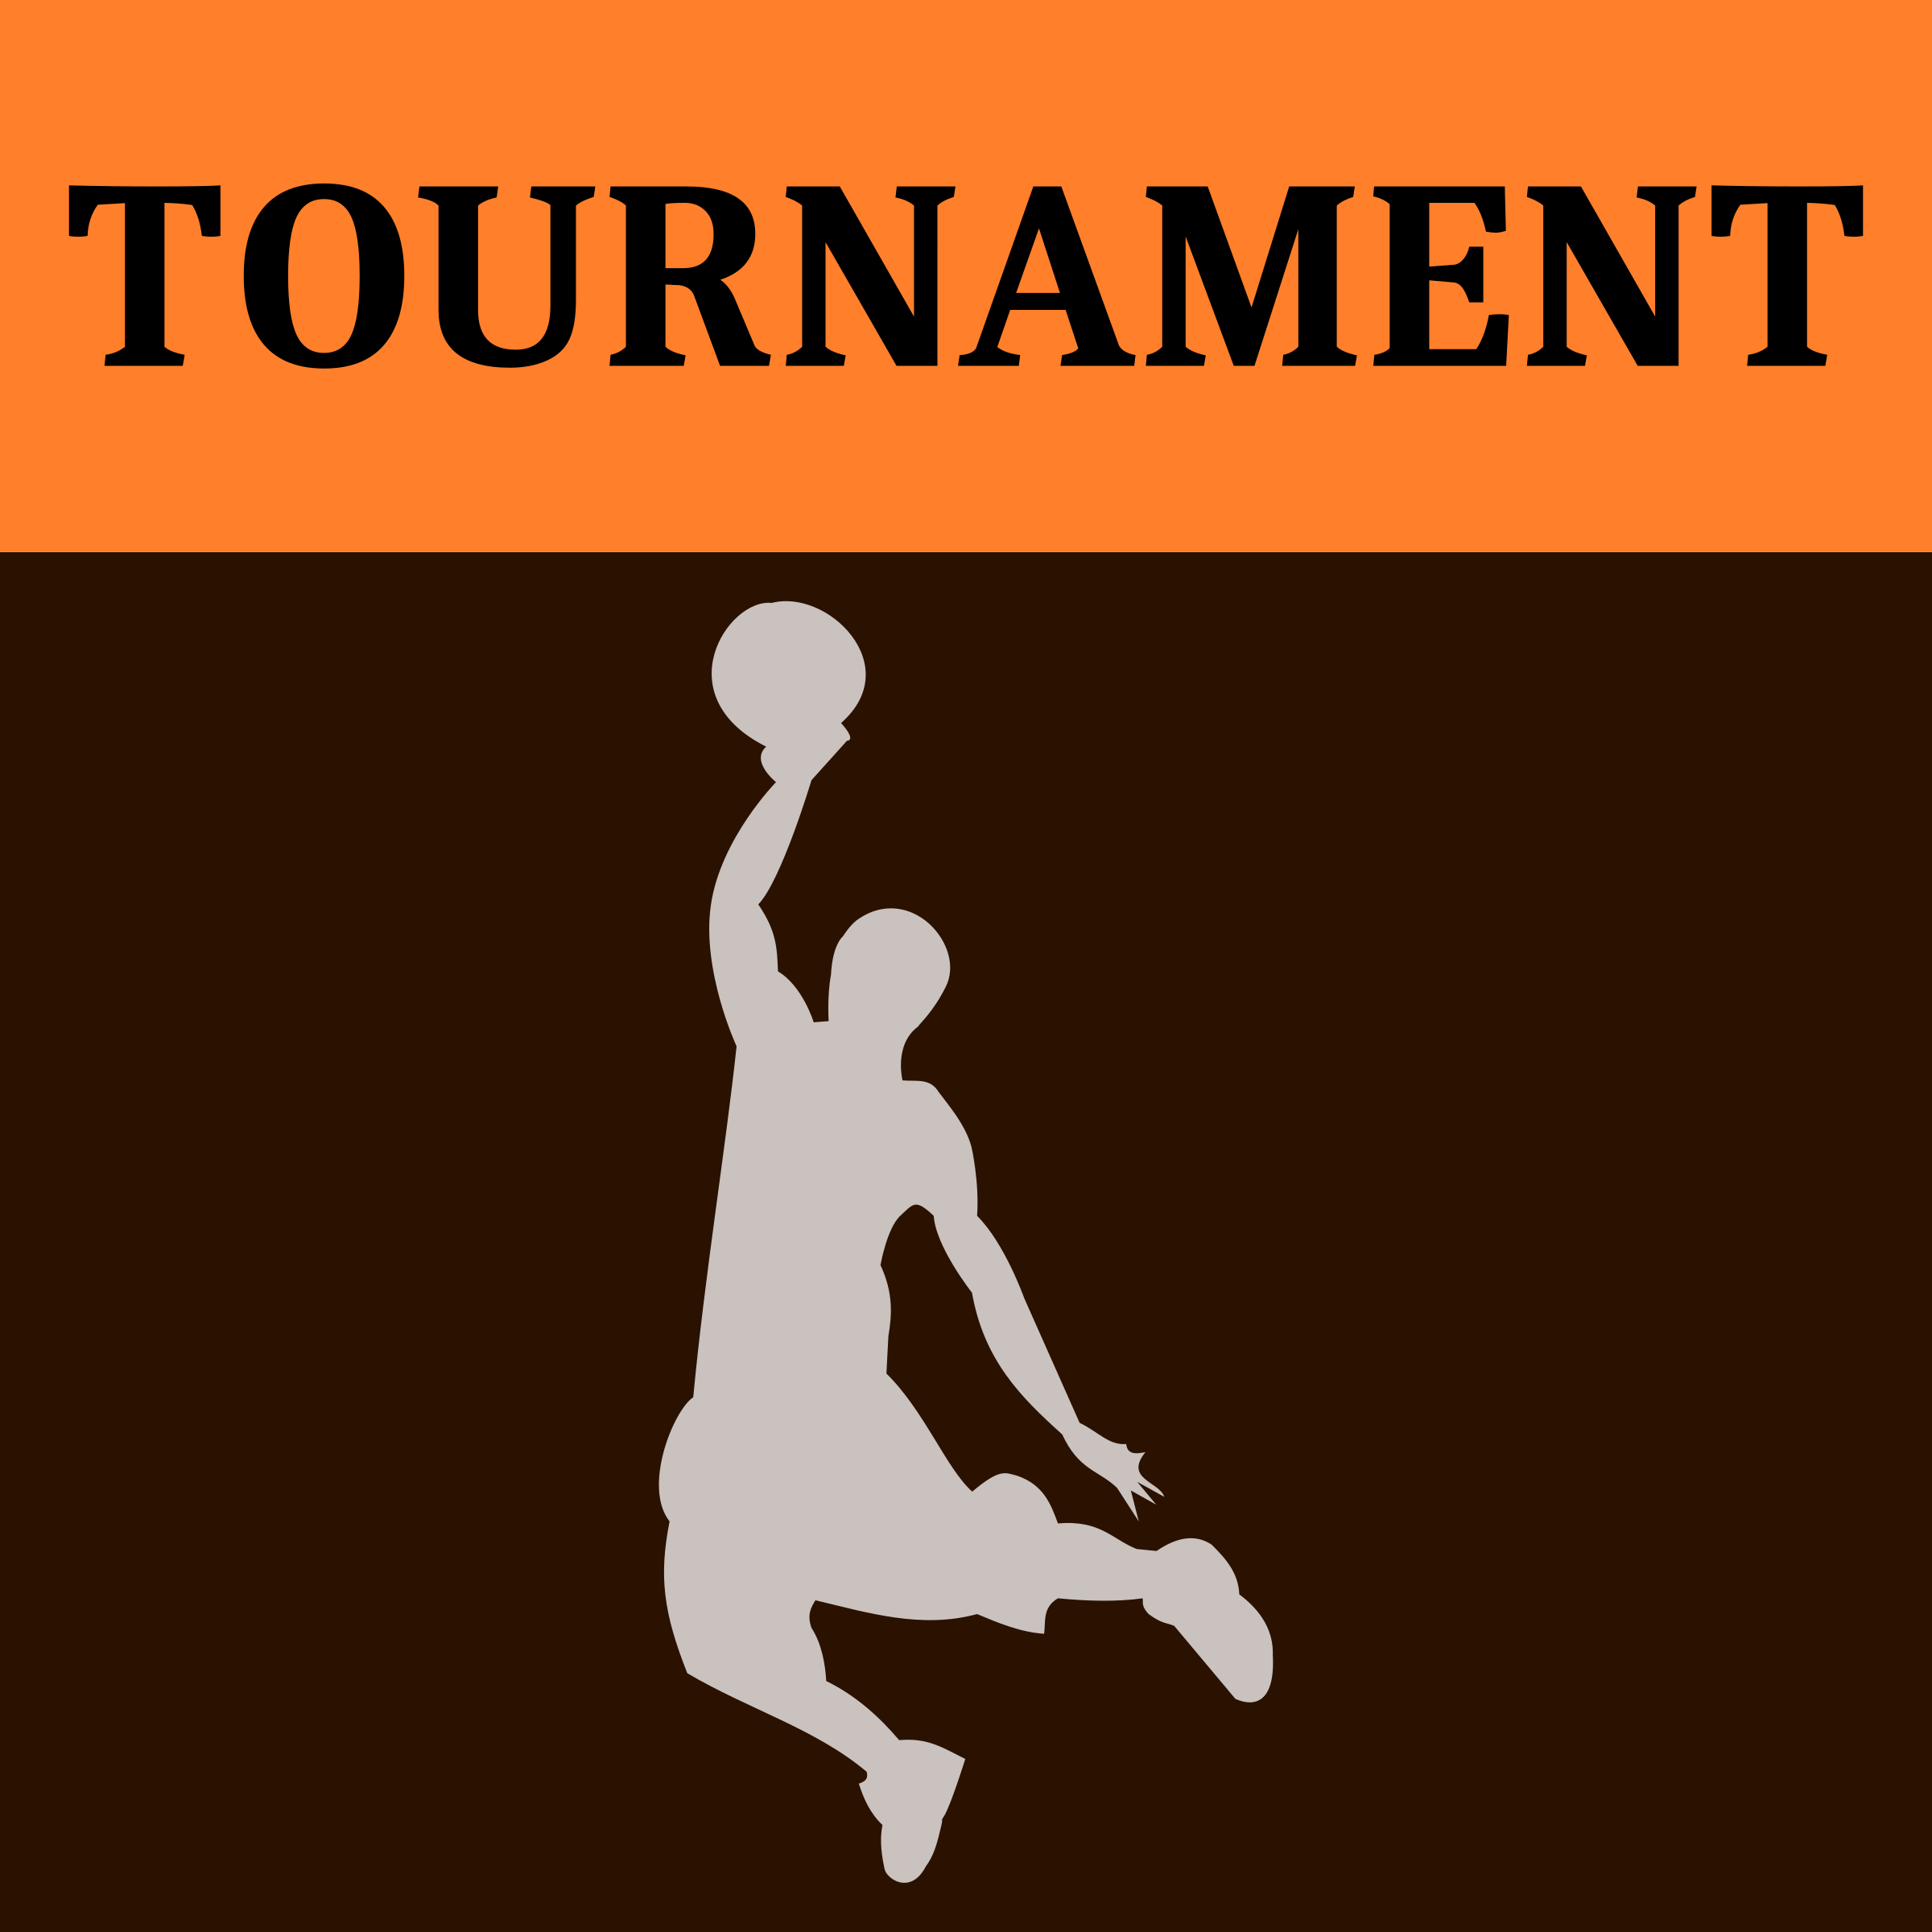 Basketball tournament clipart special olympic graphic royalty free download Special Olympics Basketball Tournament In Pierre - Clip Art Library graphic royalty free download